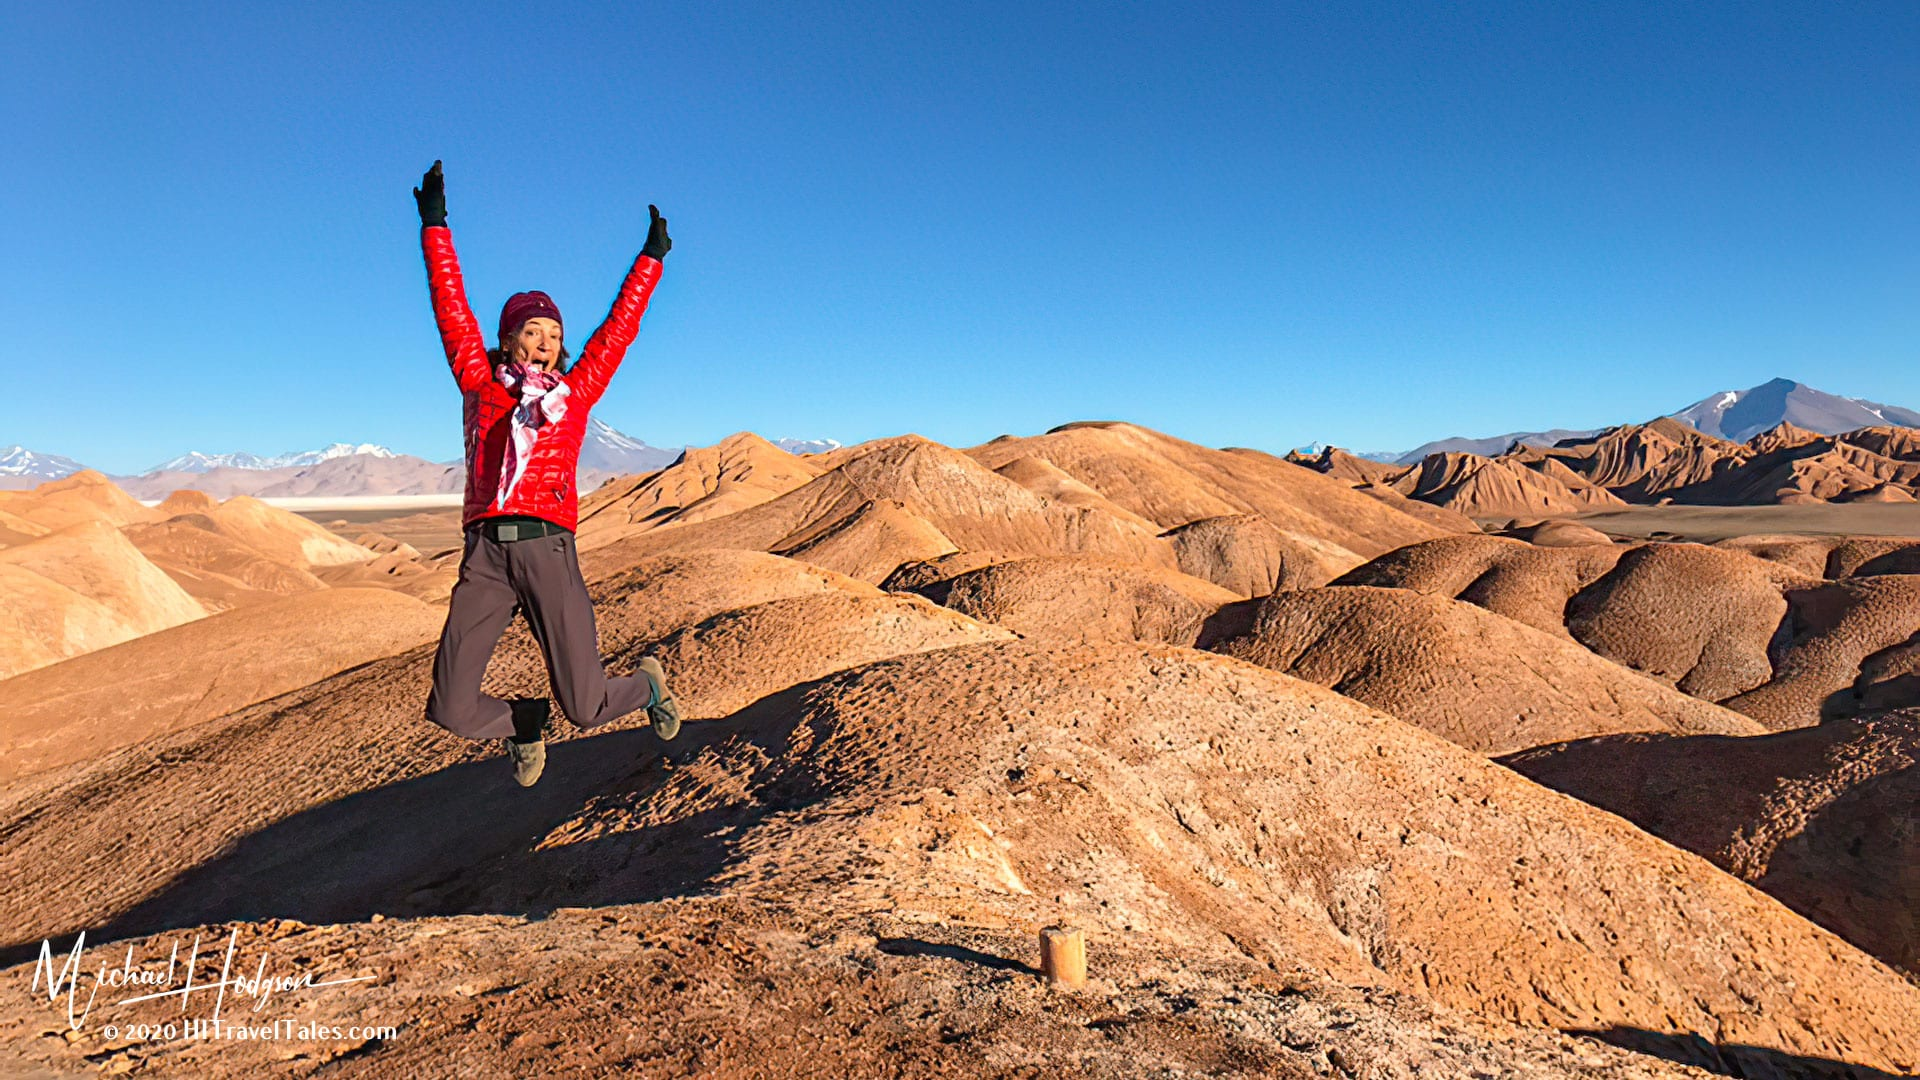 Therese Iknoian Jumping For Joy In The Puna High Plateau In Argentina